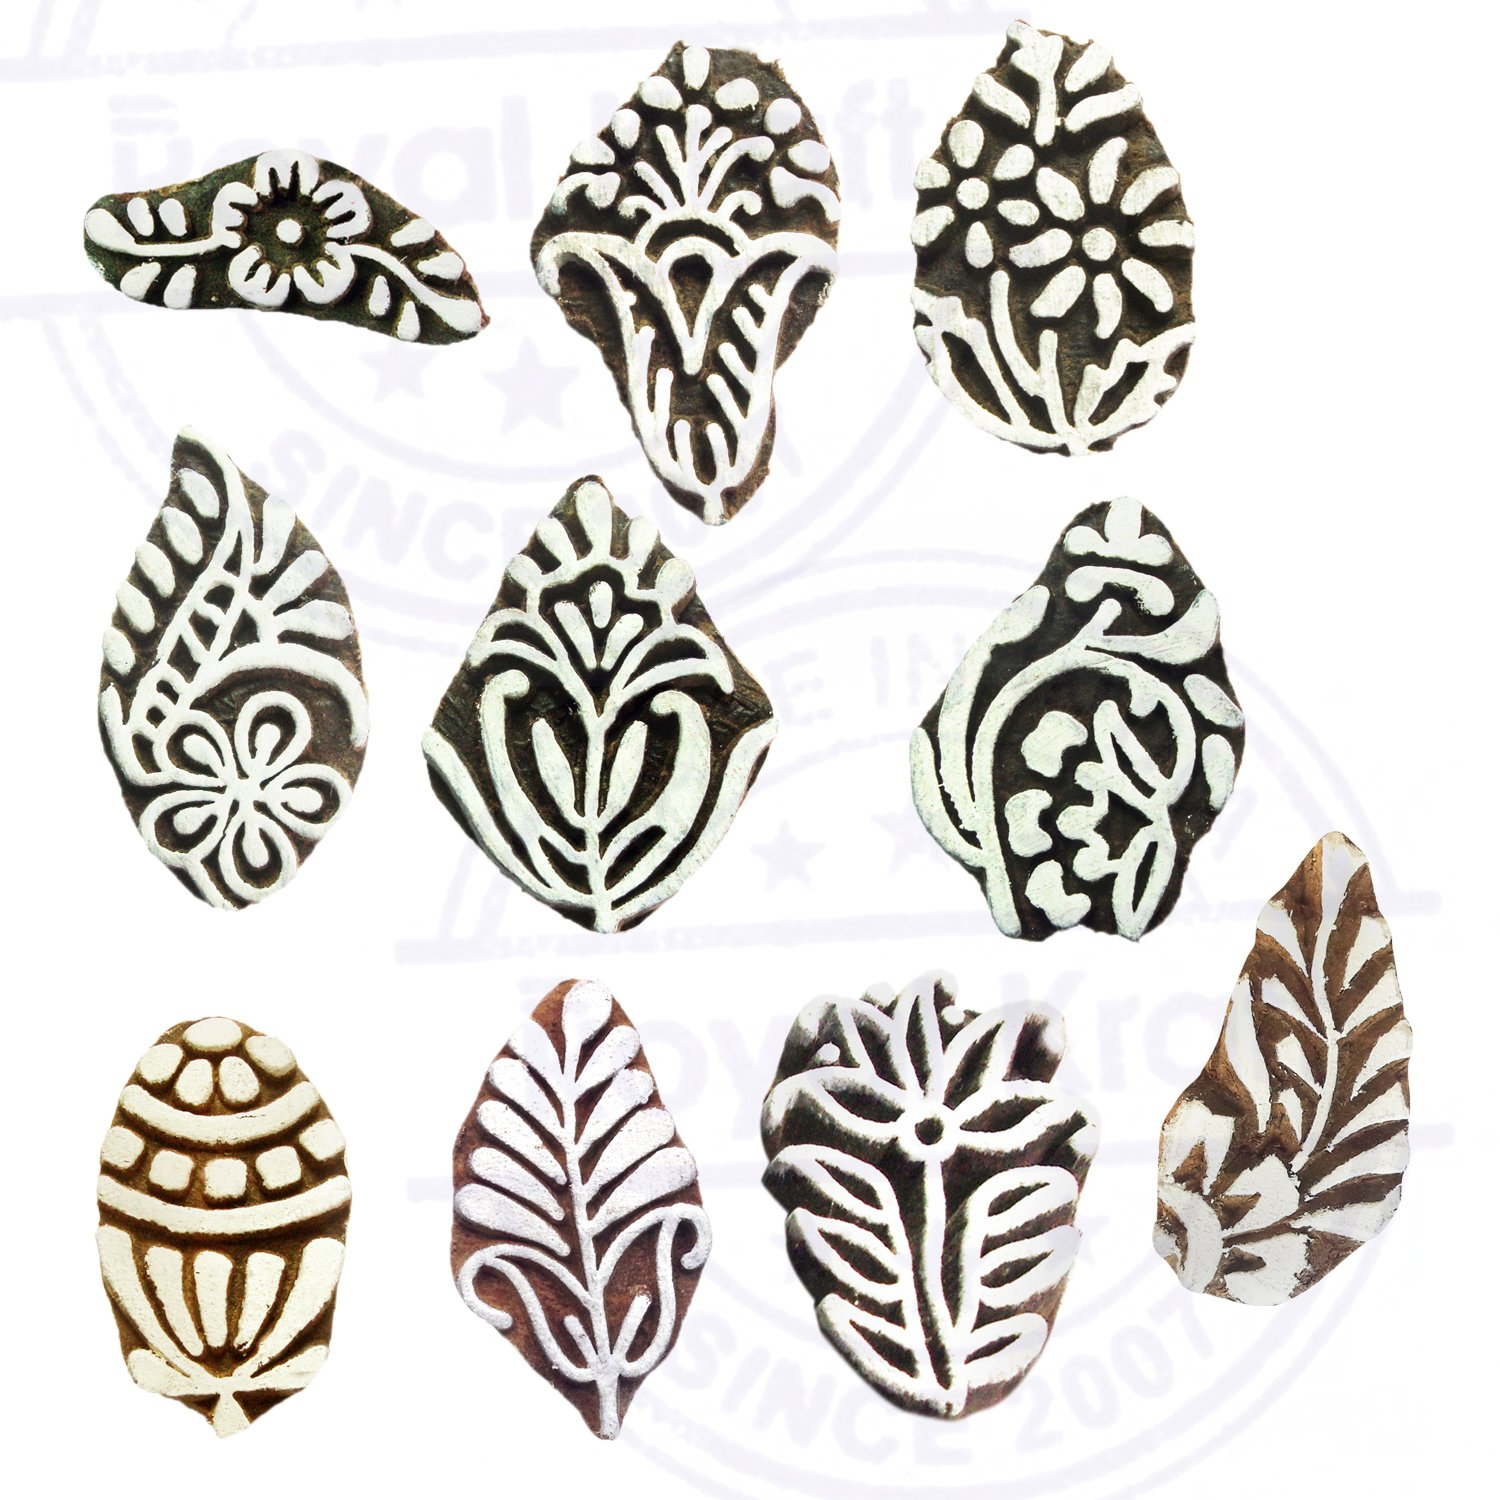 Royal Kraft Small Leaf Pattern Wooden Stamps Fabric Block Printing Htag2126 Paper Prints to Make Body Tattoos Set of 10